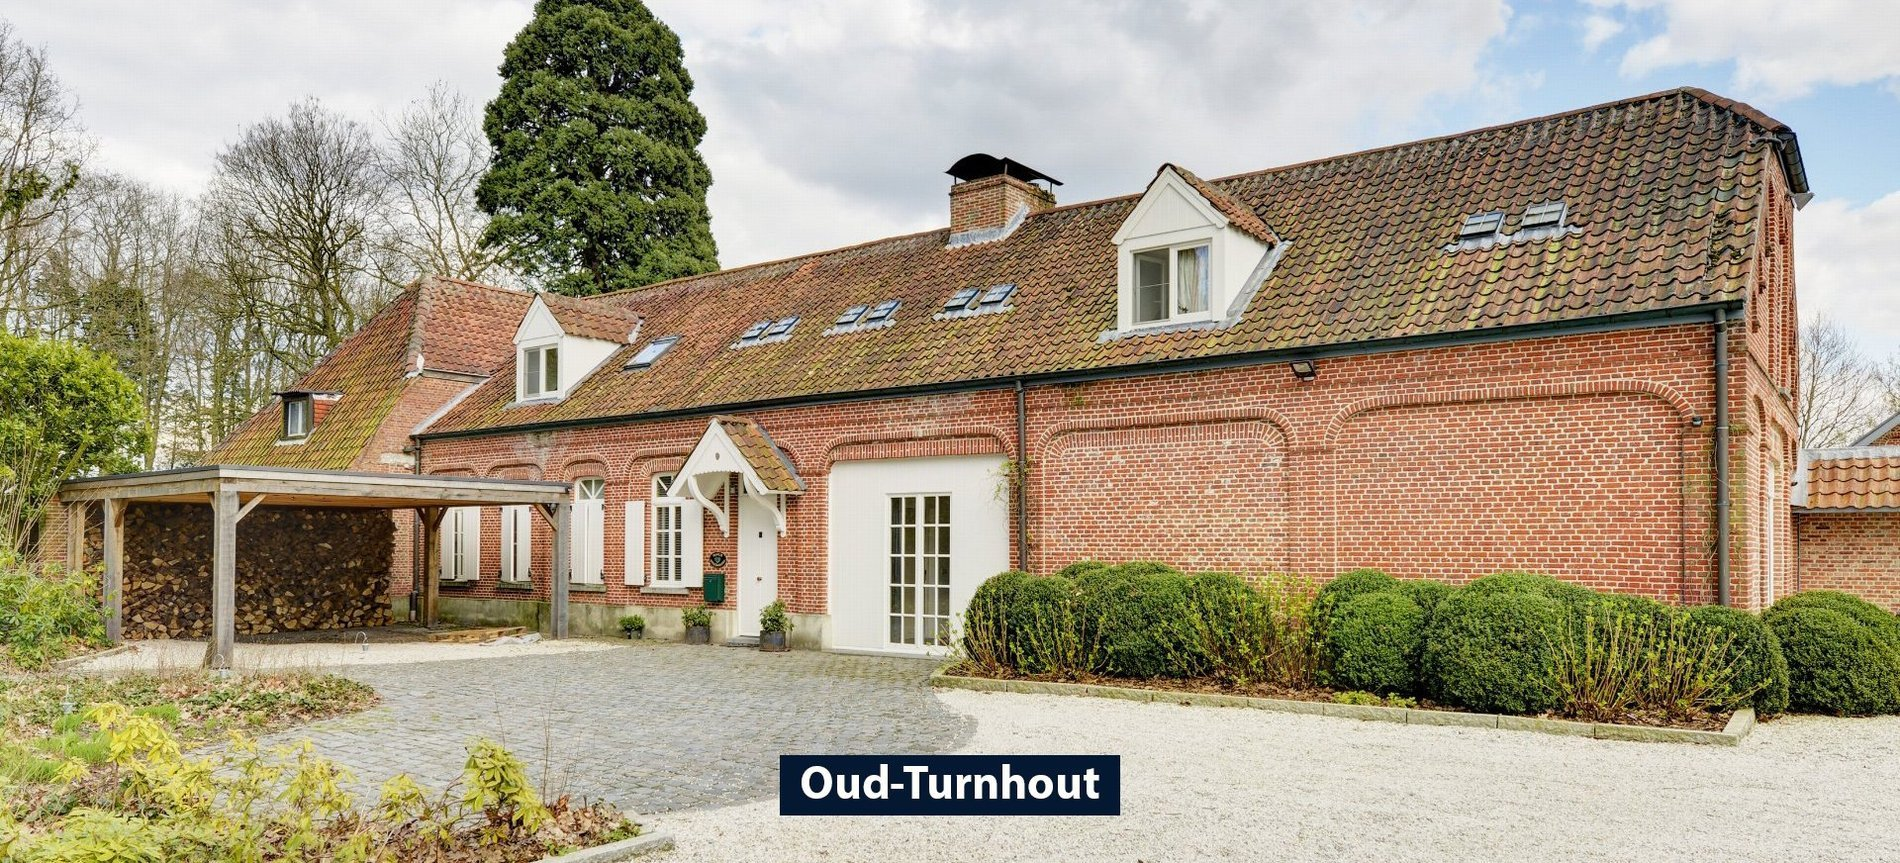 Paardenvastgoed Oud-Turnhout